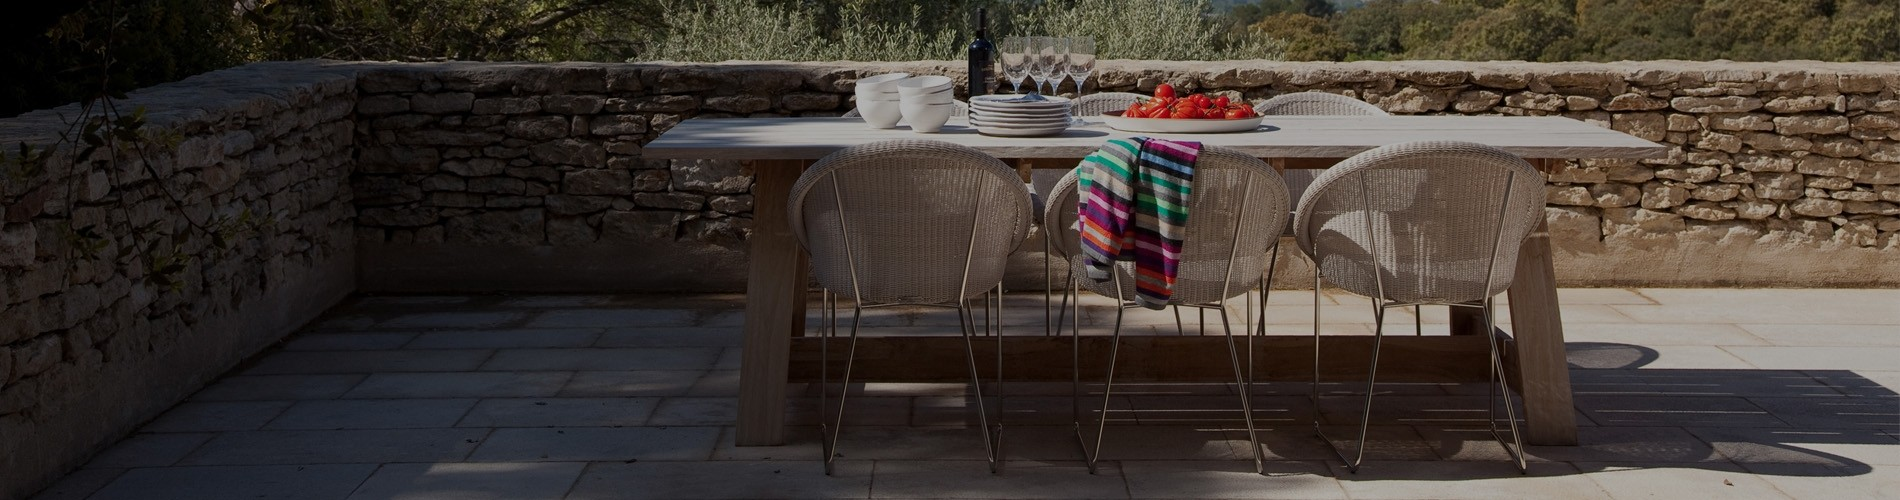 Outdoor Garden Dining Furniture Sets | 4 6 8 Seater Table Chairs